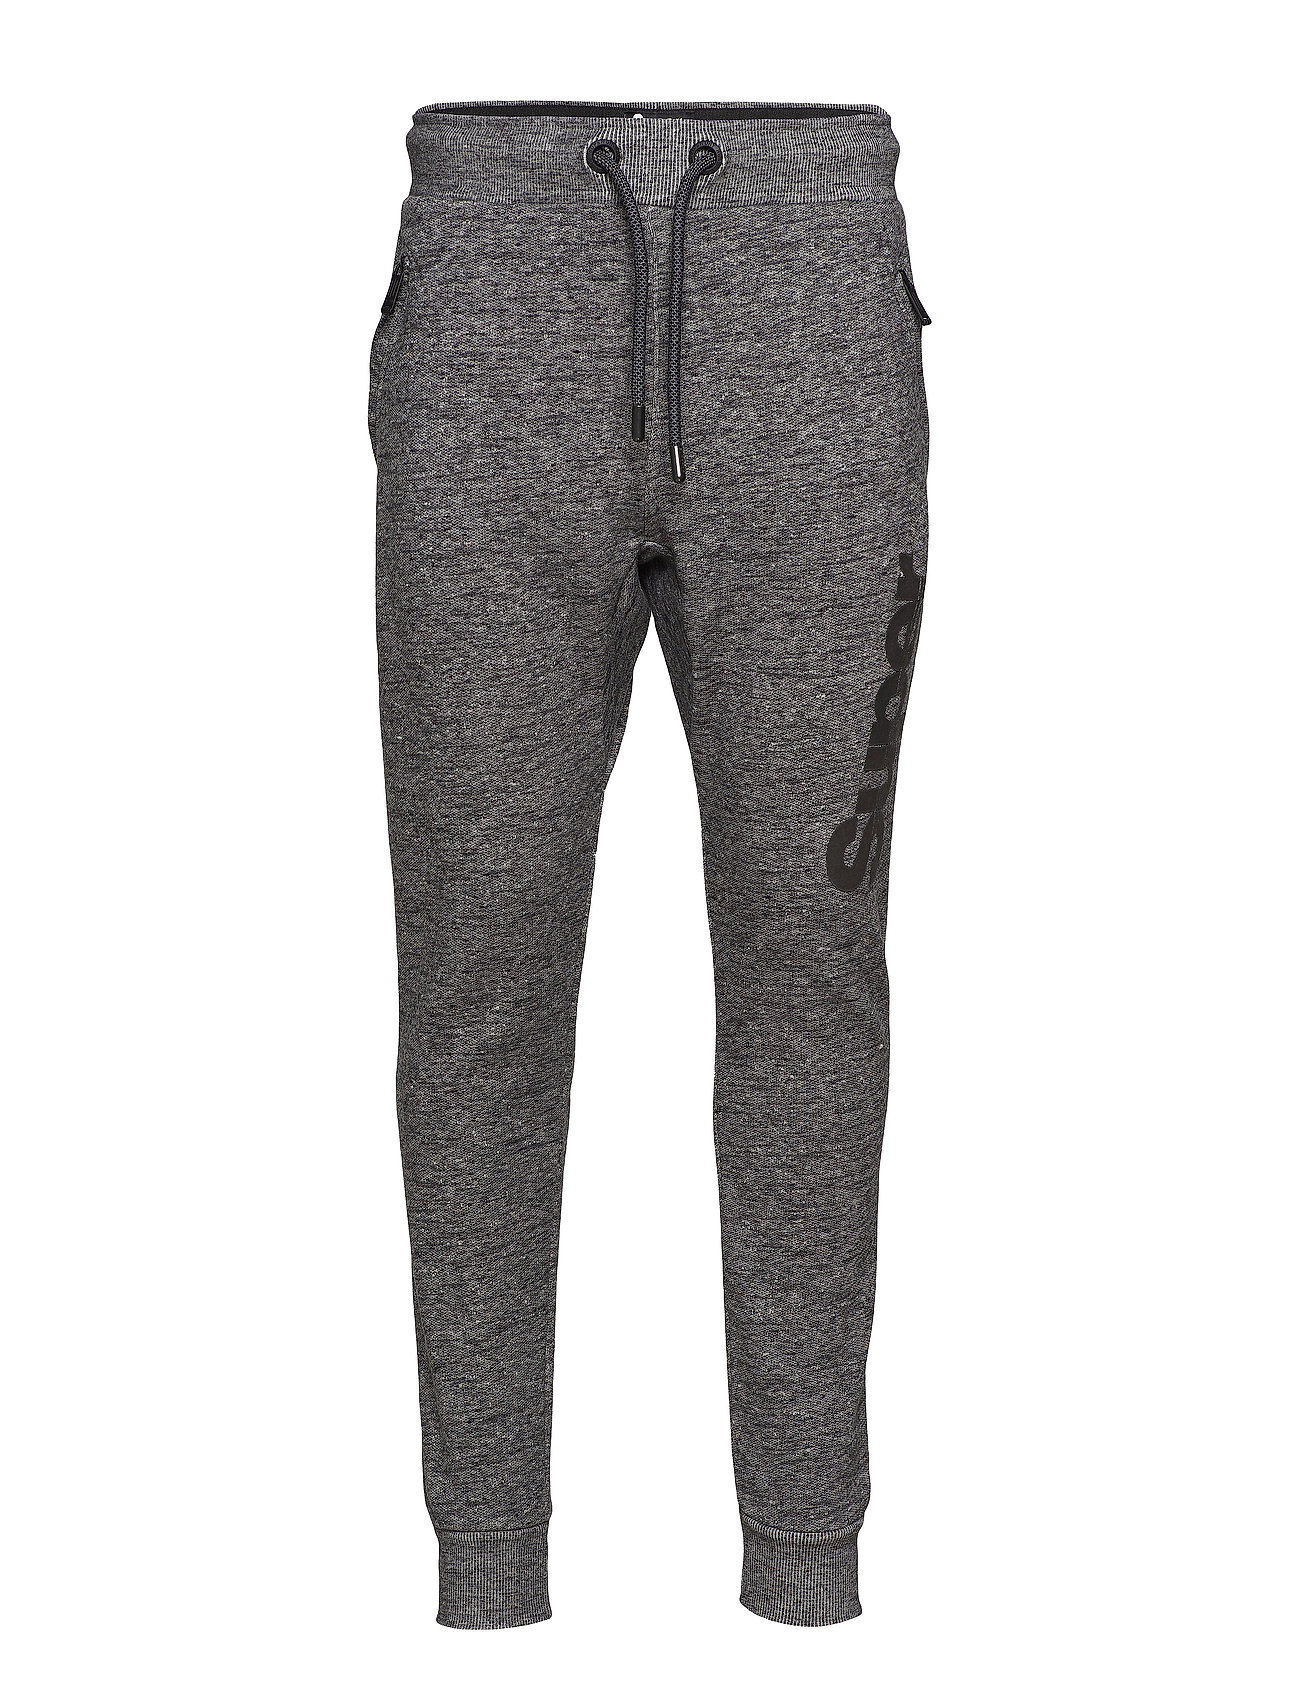 Superdry TIME TRIAL ANGLED PKT JOGGER - BLACK FIELD GRIT